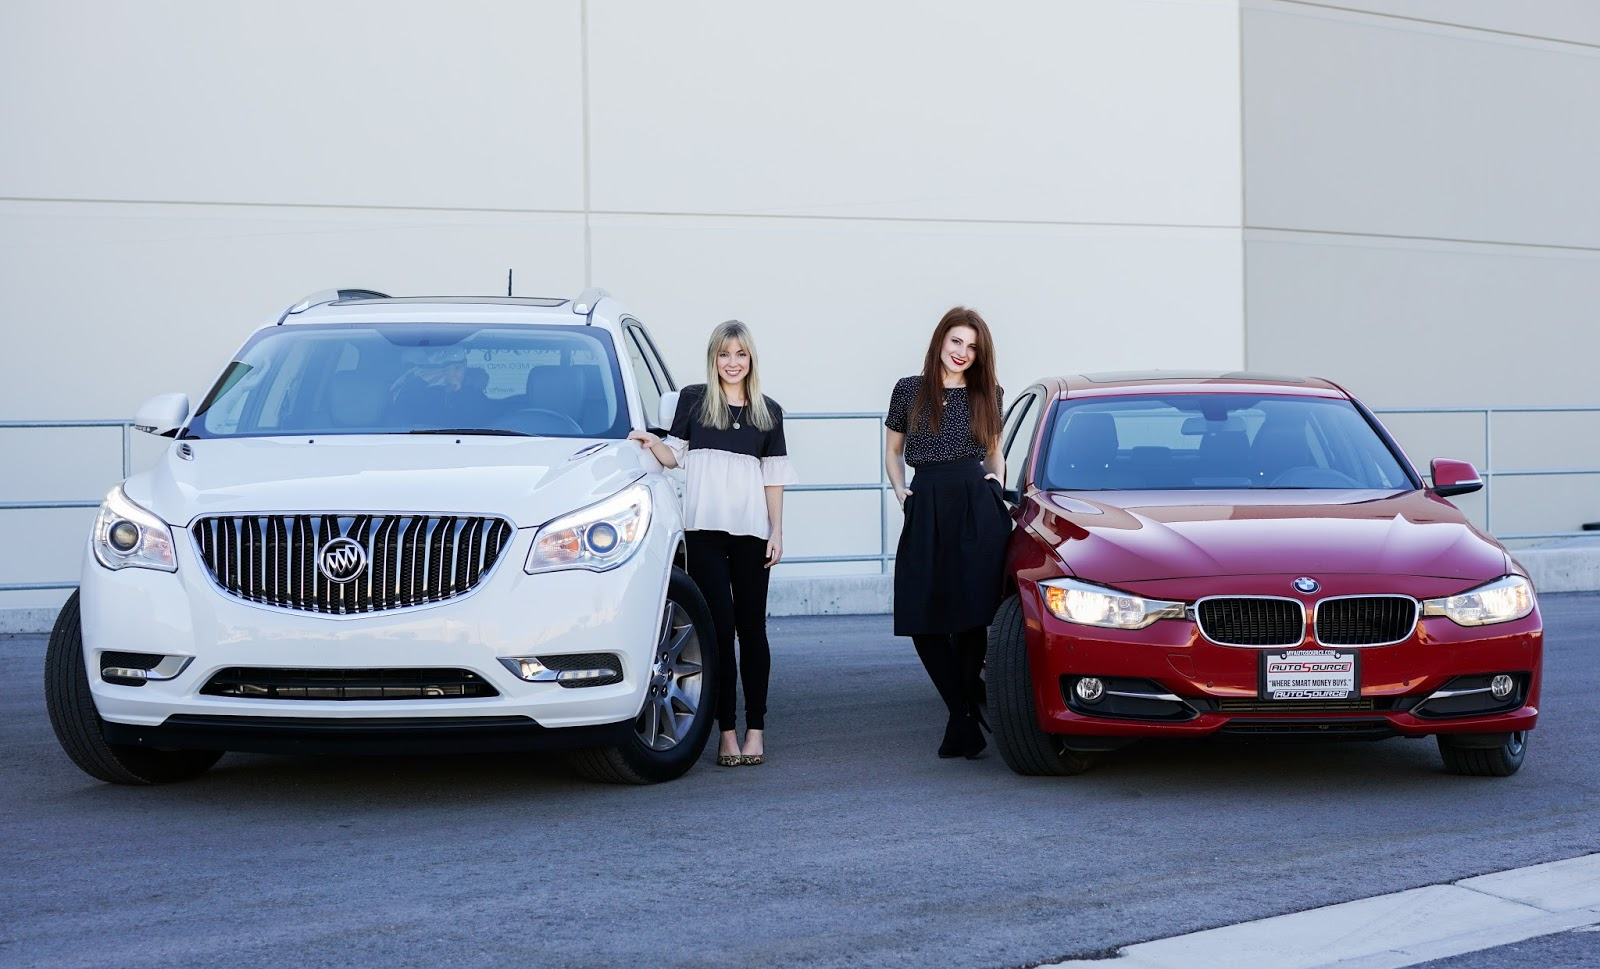 buick enclave, bmw sports car, review, branded title vehicles